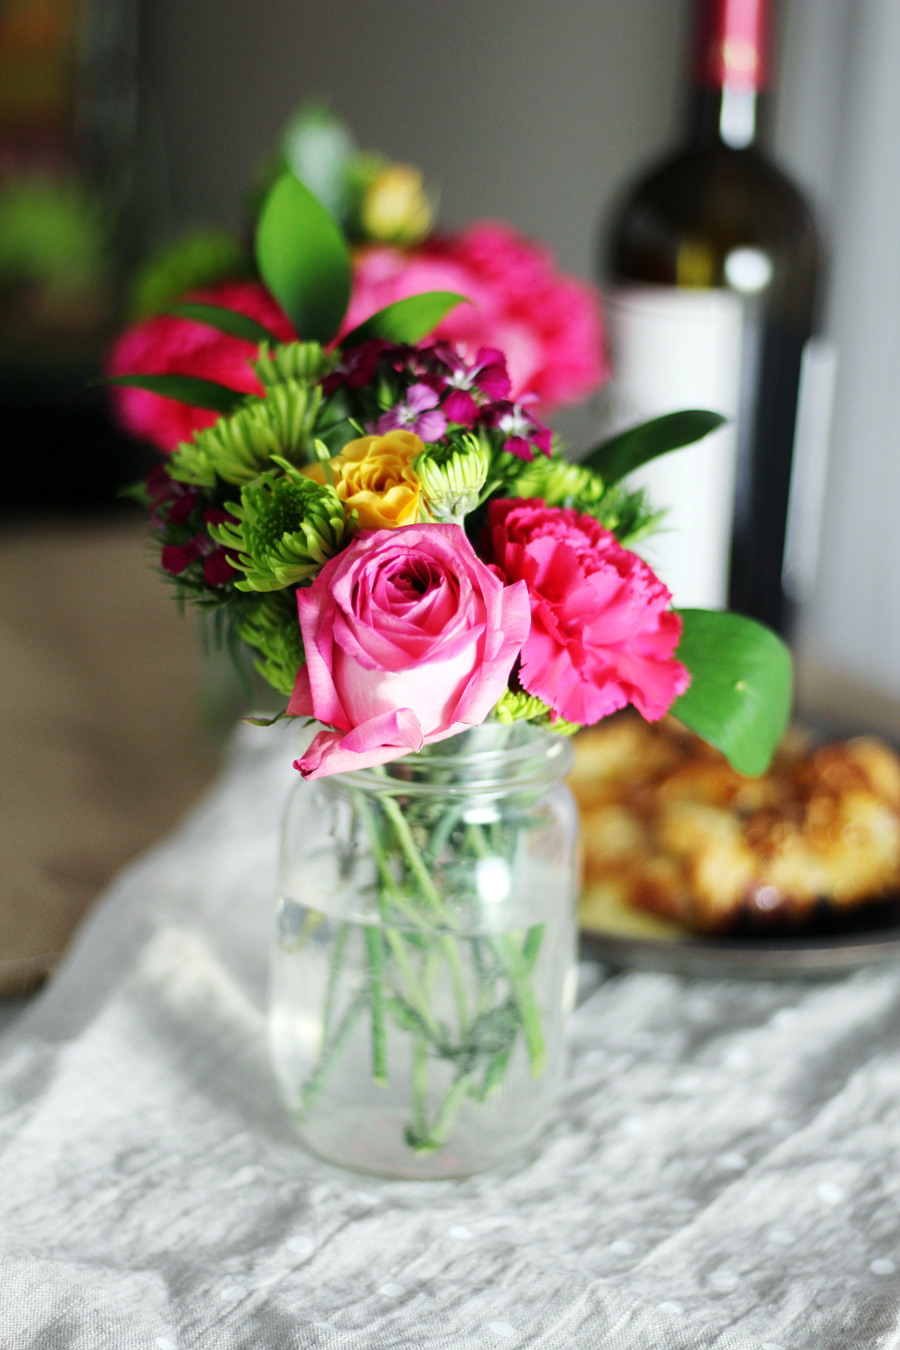 A jar filled with pink roses and assorted flowers, with a bottle of wine and baked brie in the background